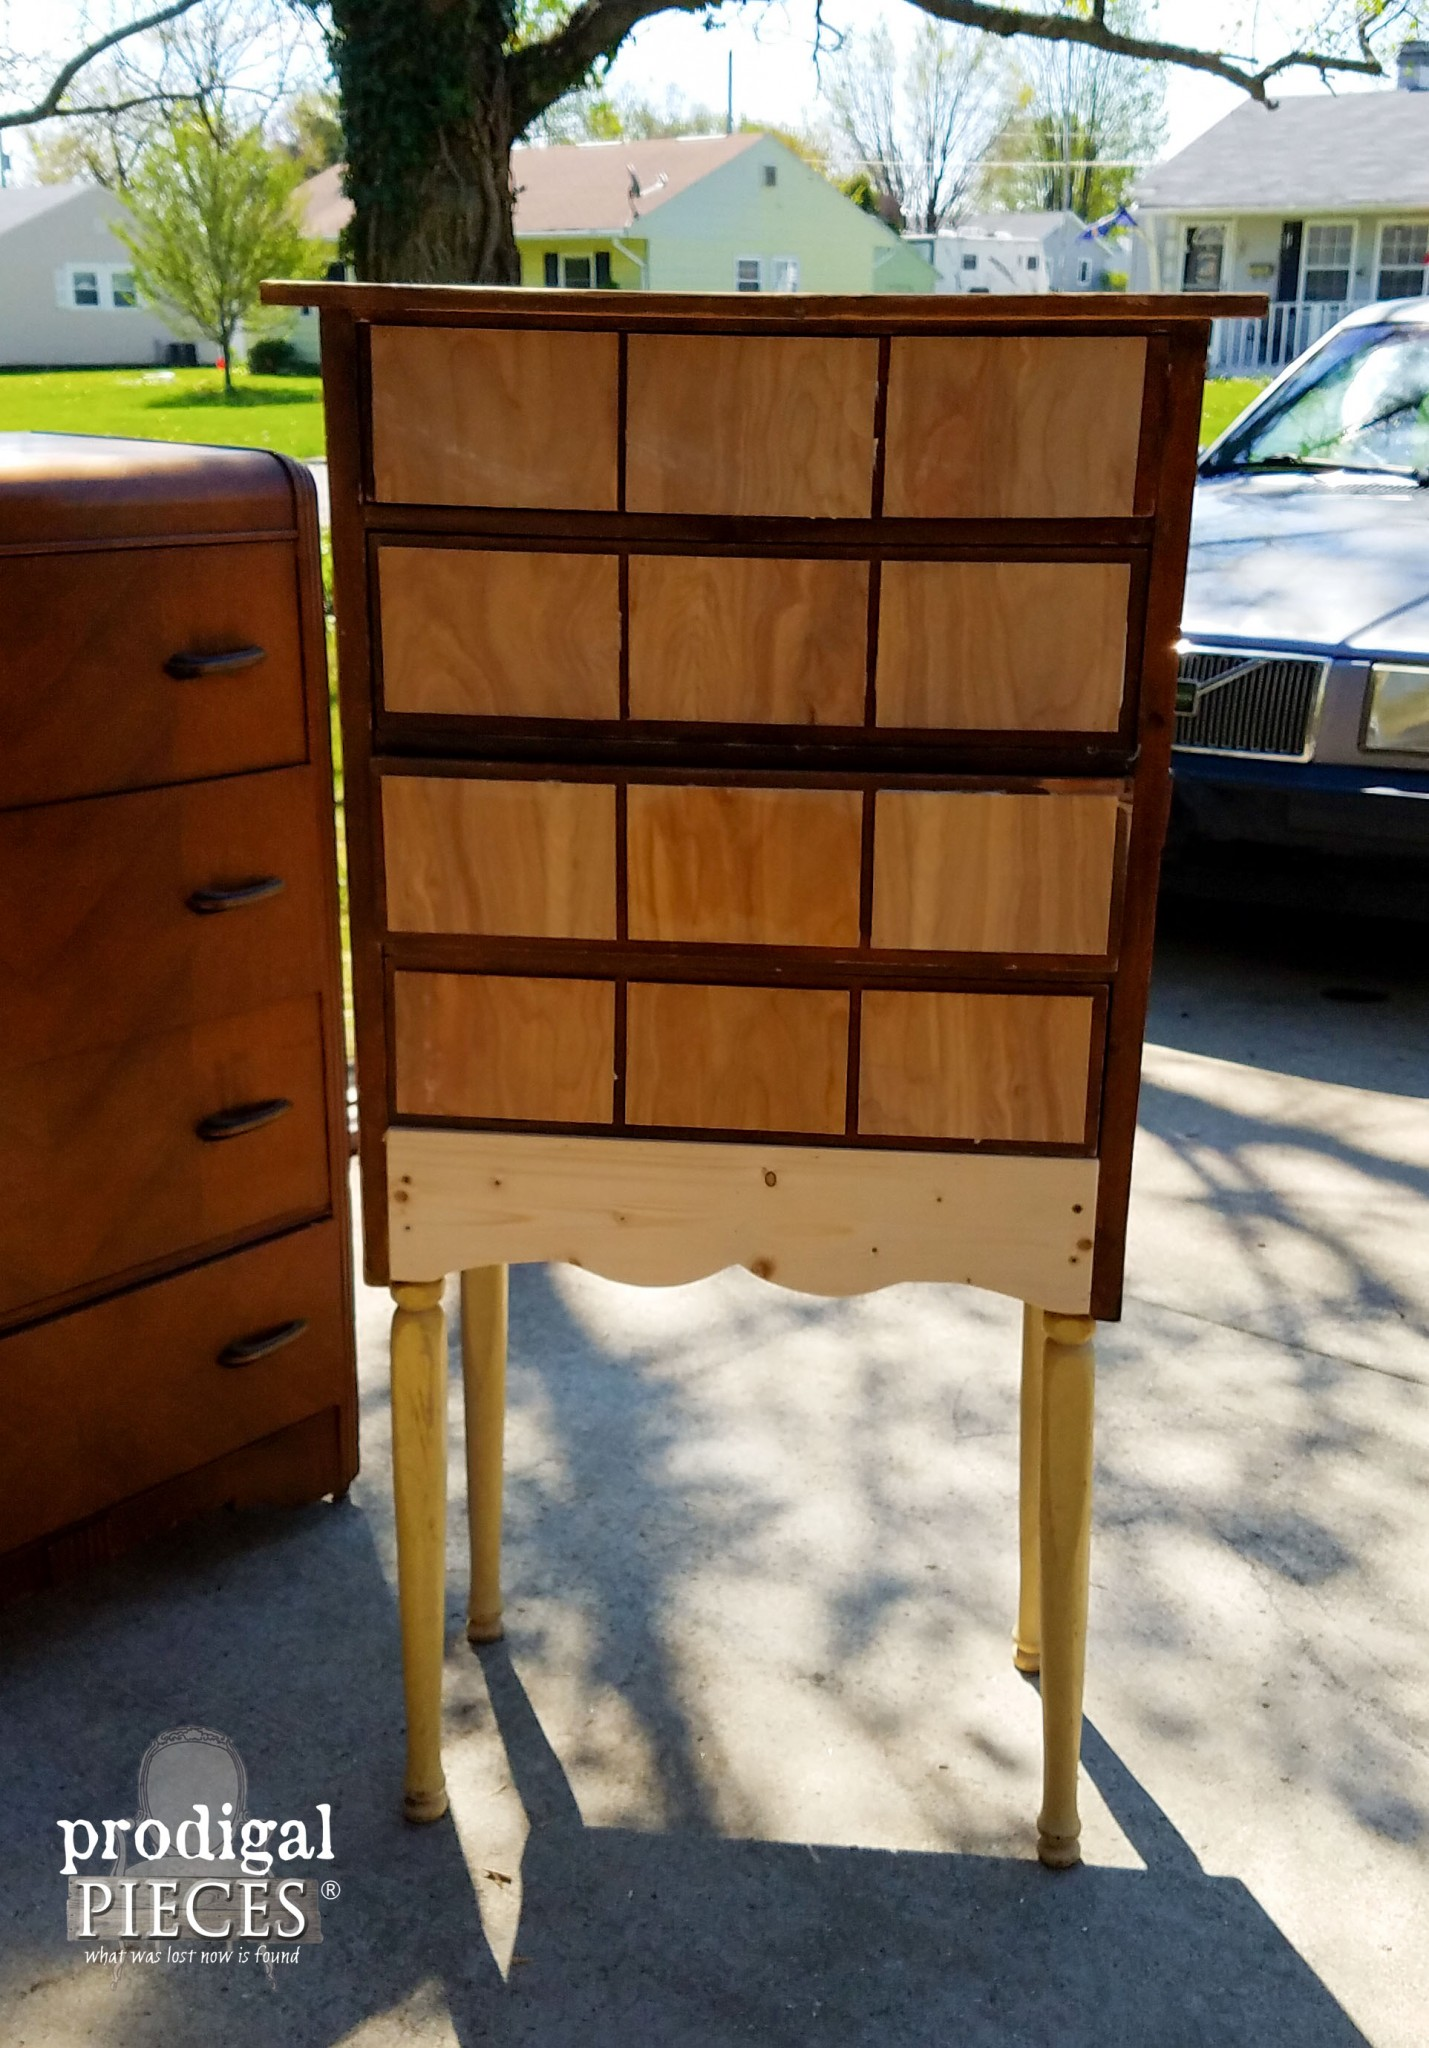 Repurposed Child's Dresser as Card Catalog Before Paint | Prodigal Pieces | www.prodigalpieces.com